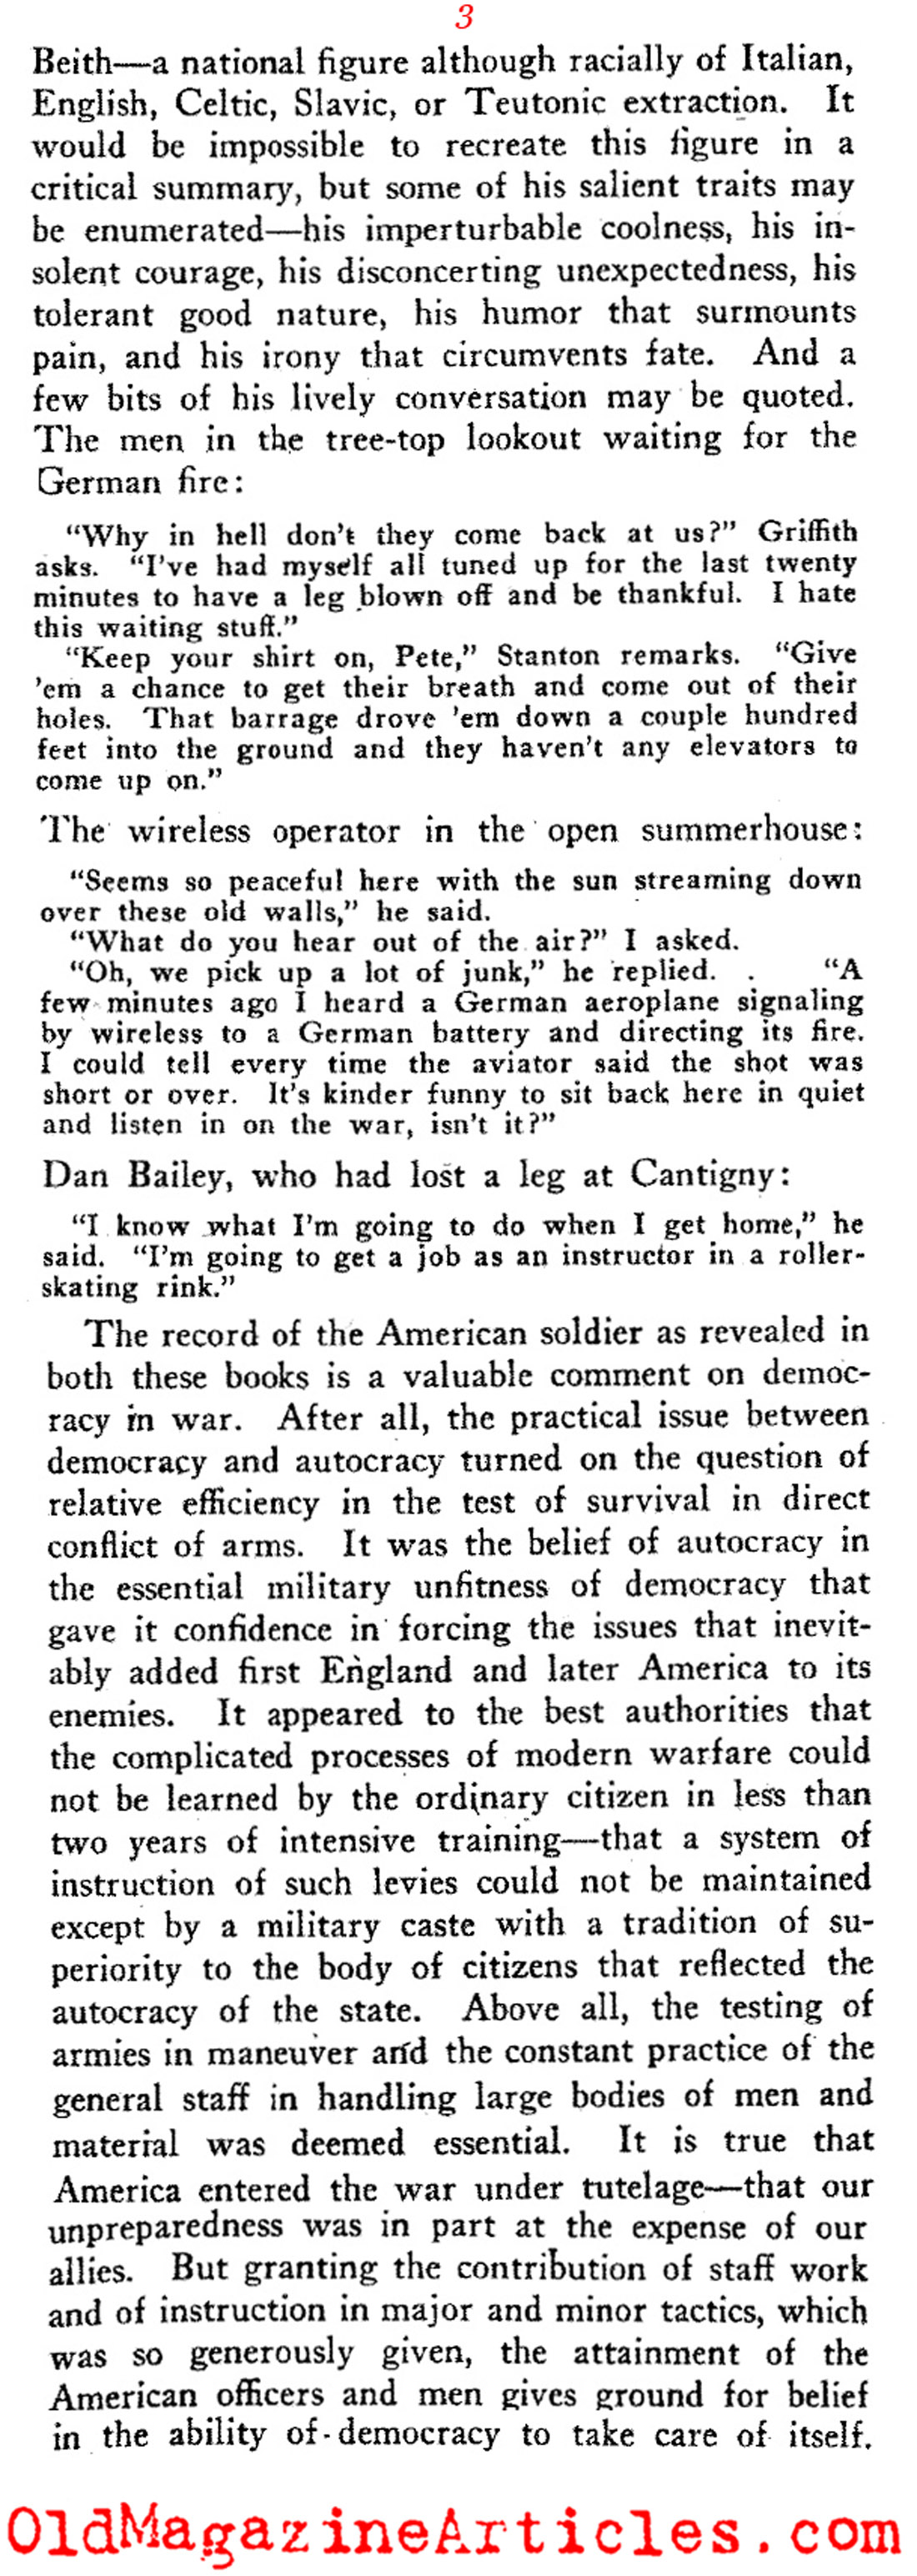 A Review of Two W.W. I Books (The Dial Magazine, 1919)